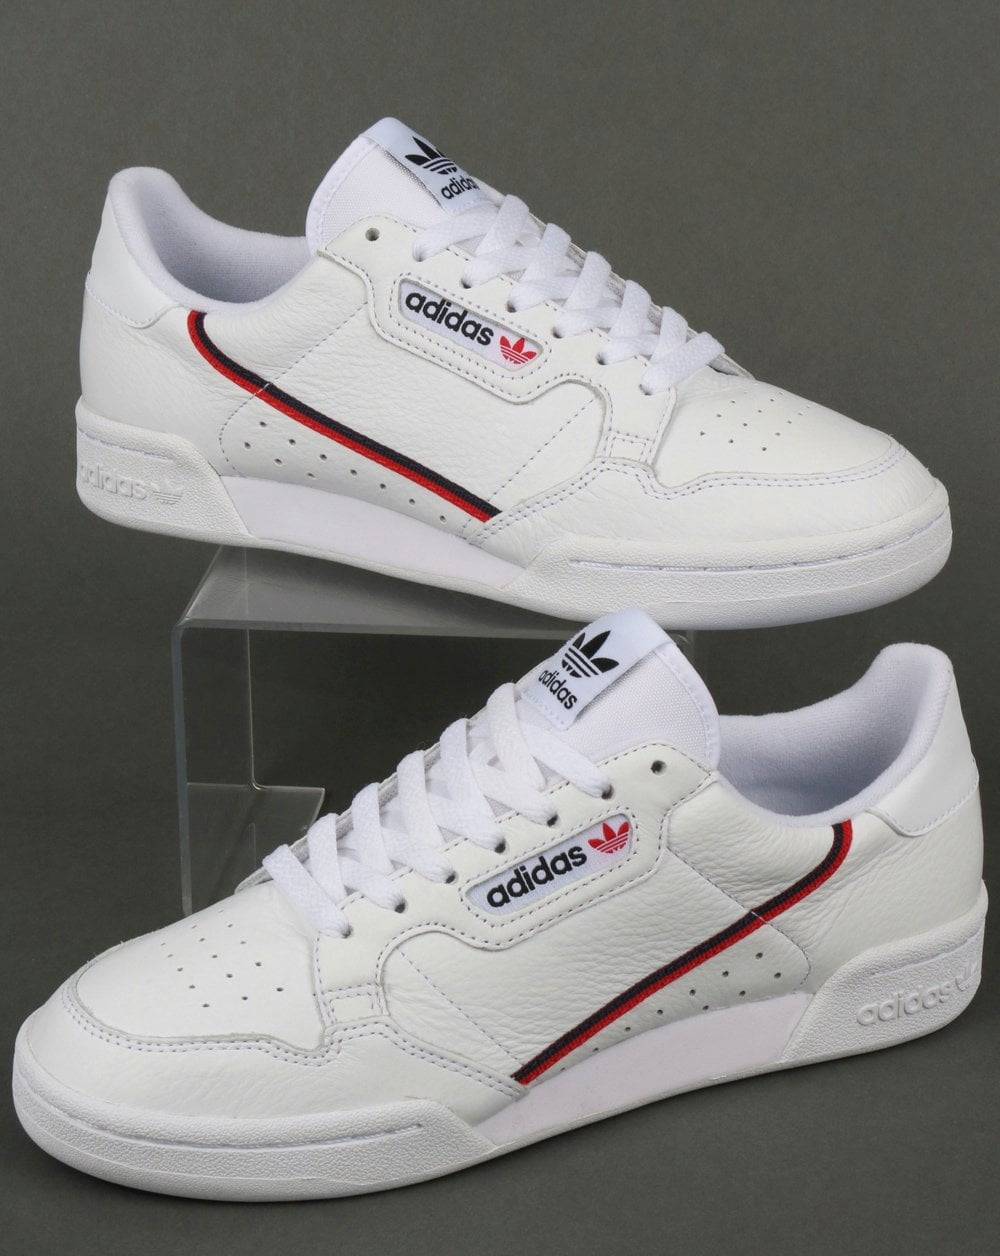 Adidas Continental 80 Trainers White/Red/Navy